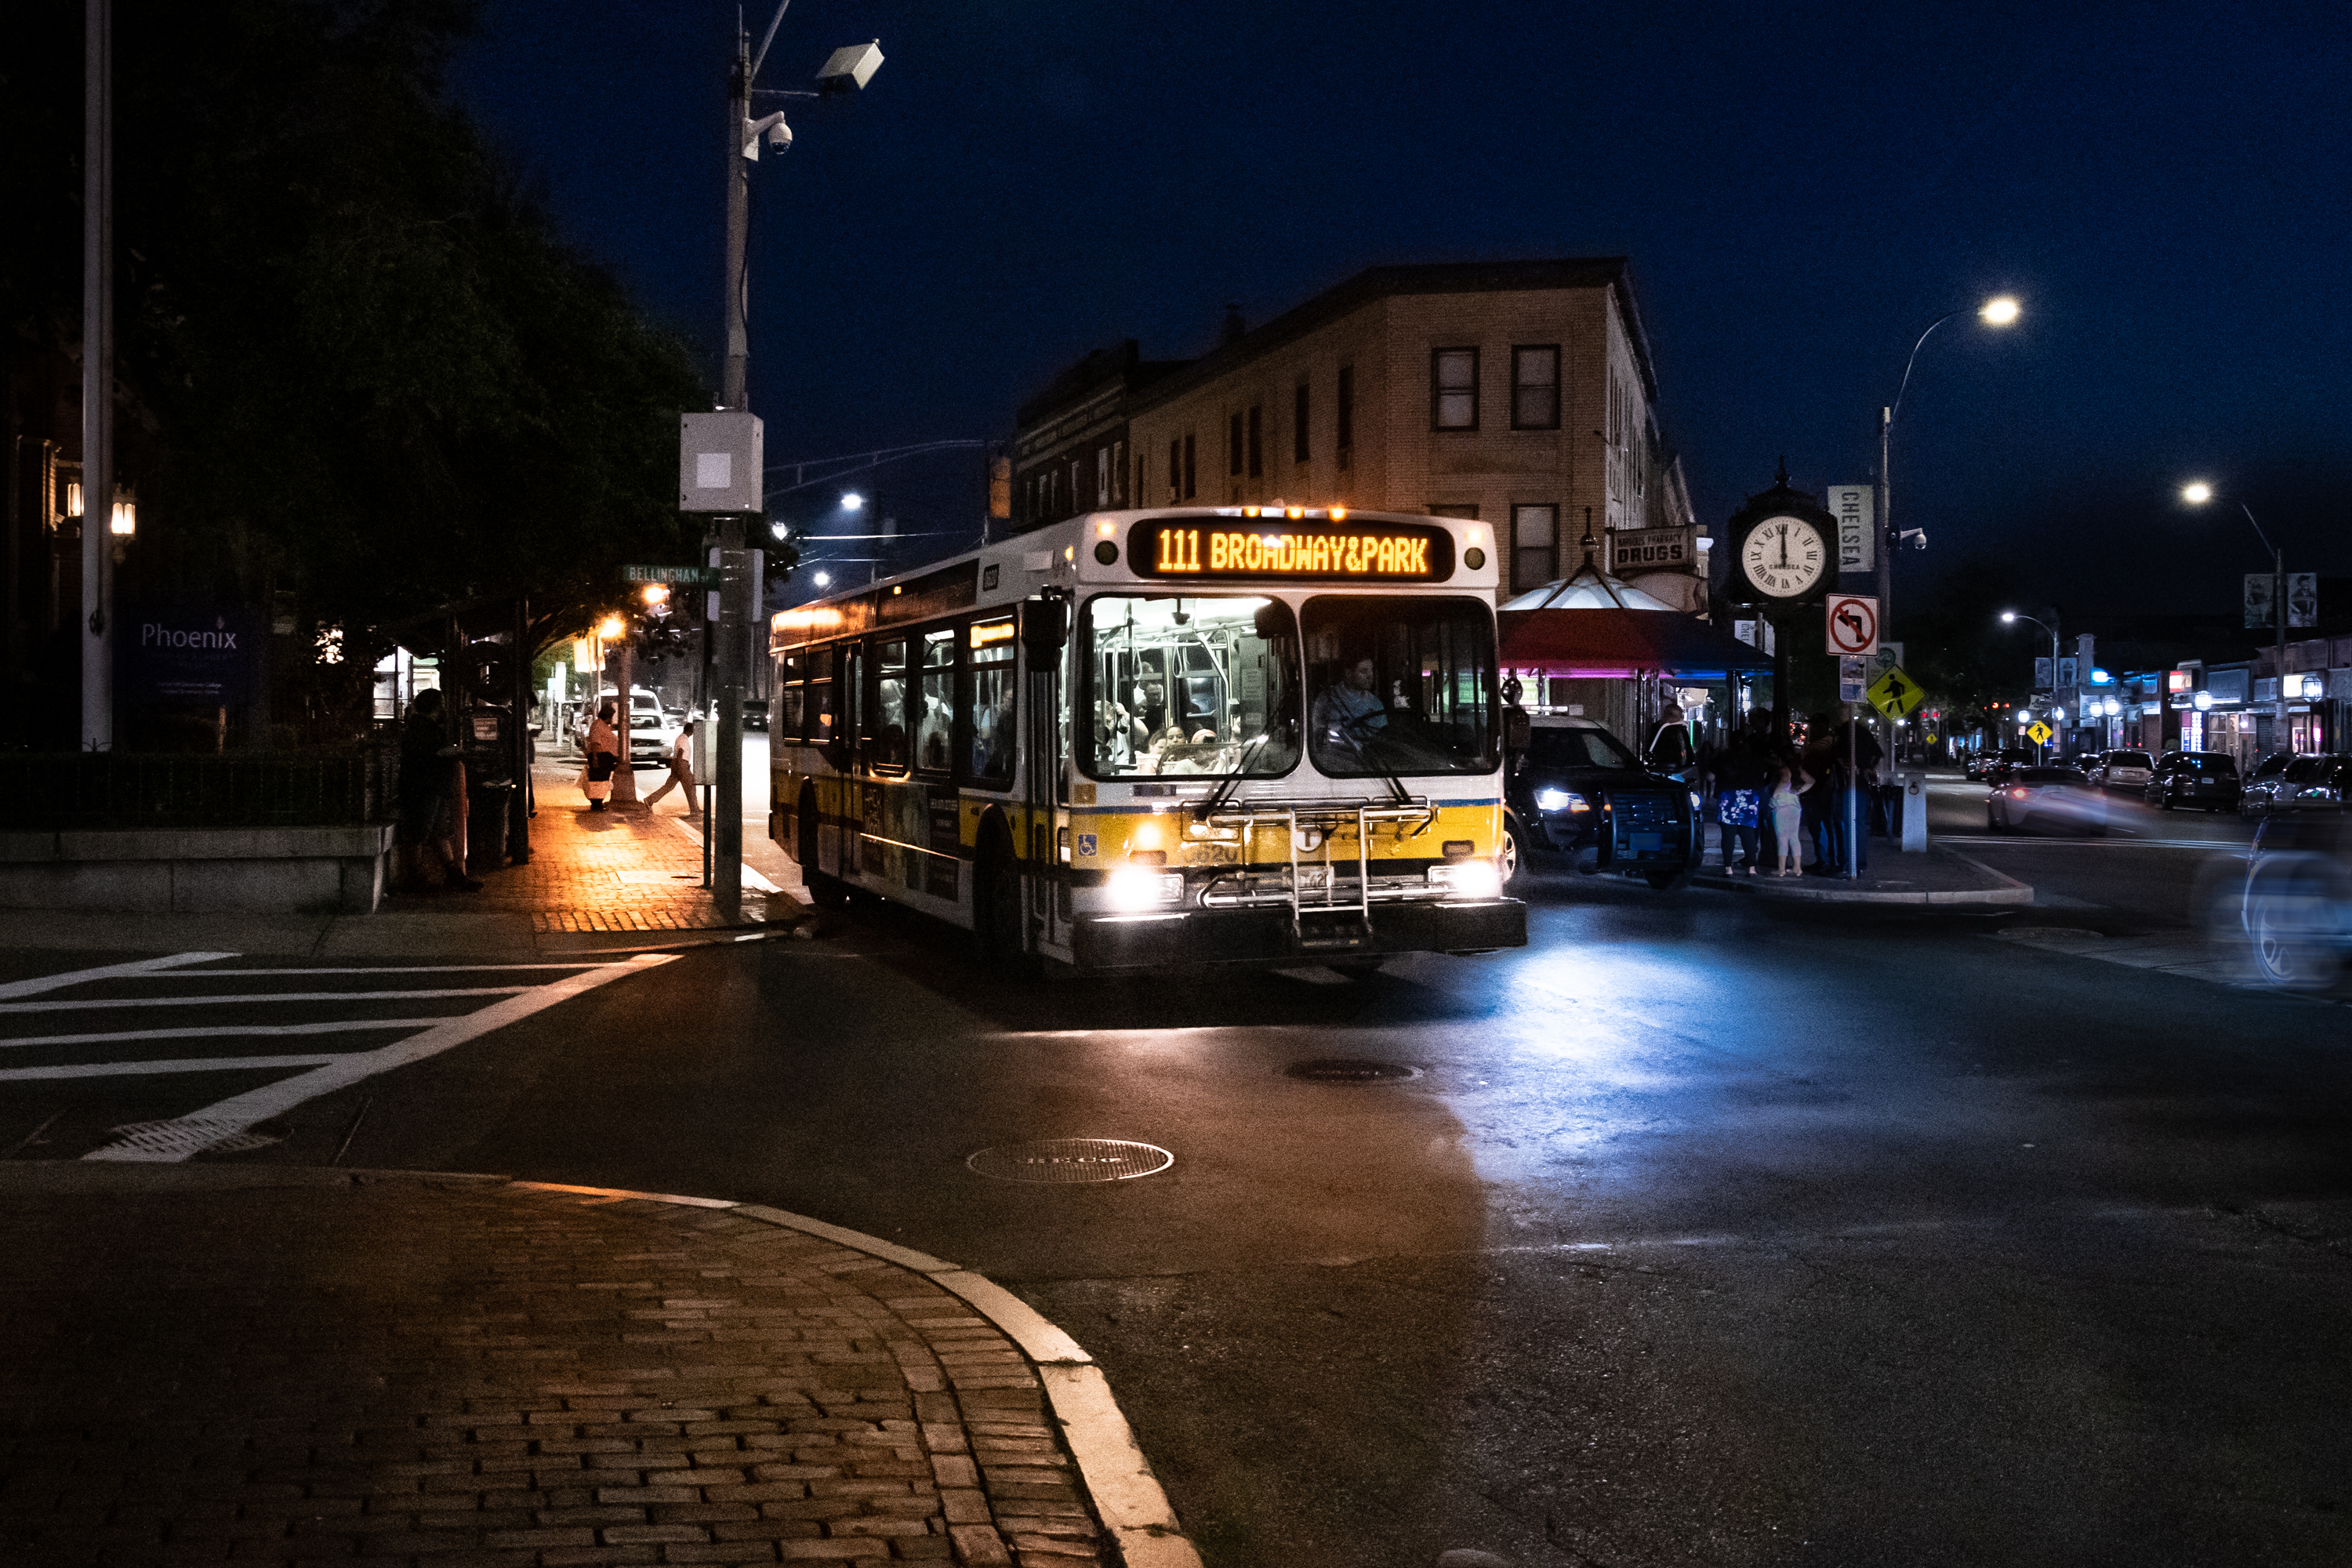 Overnight bus service on the 111 in Chelsea